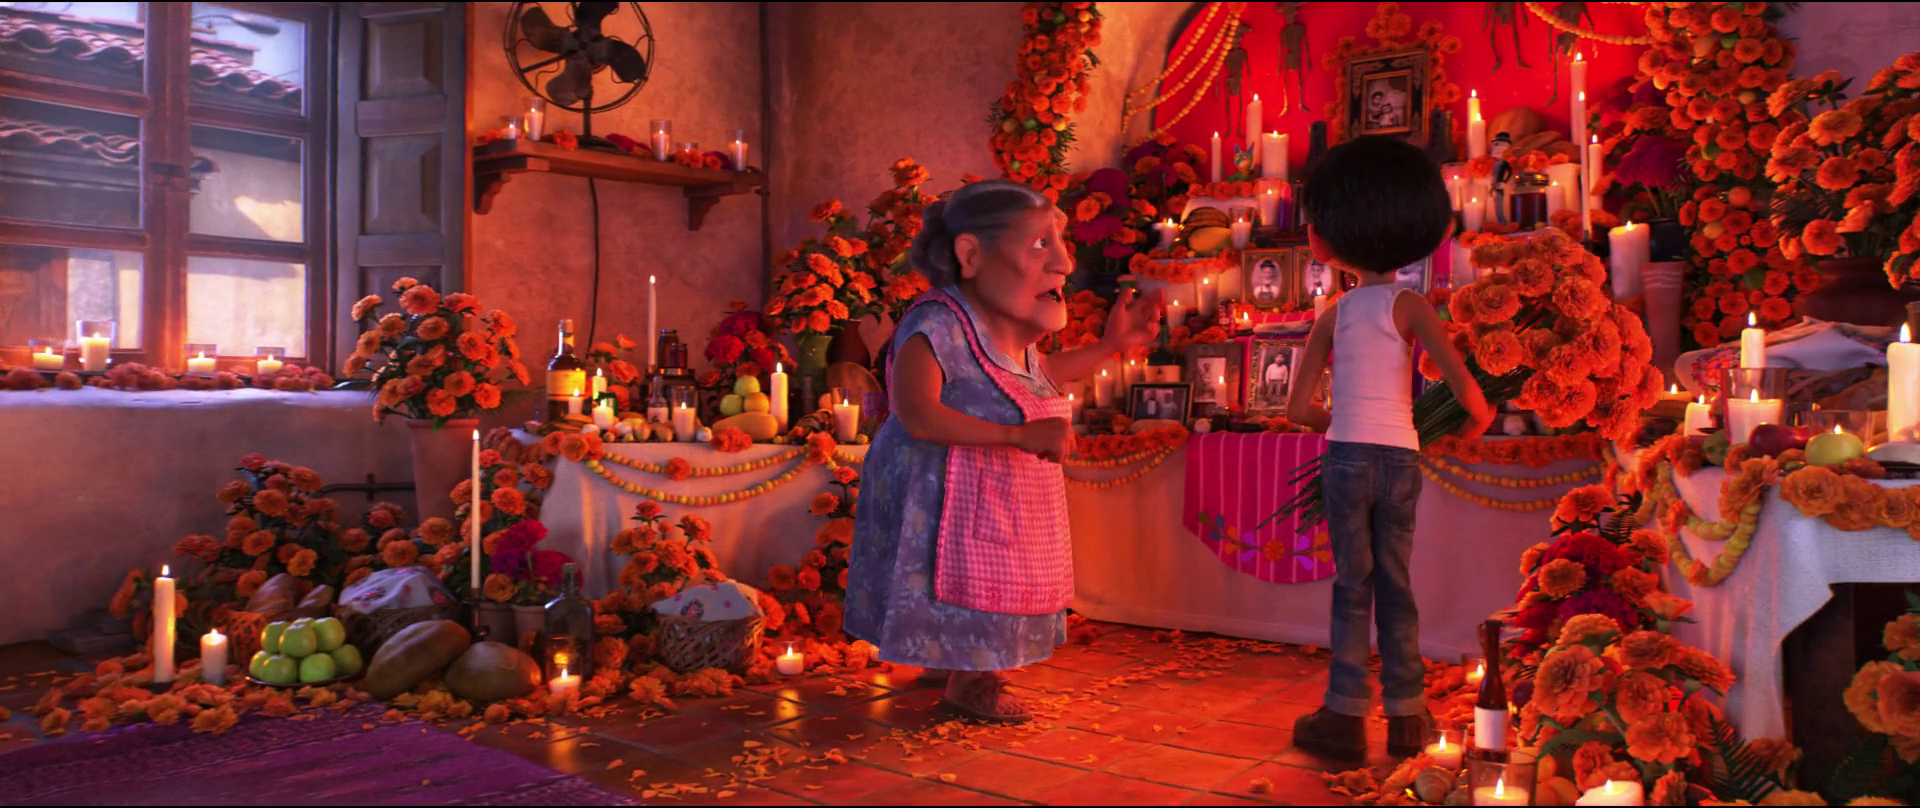 coco 2017 full movie torrent download